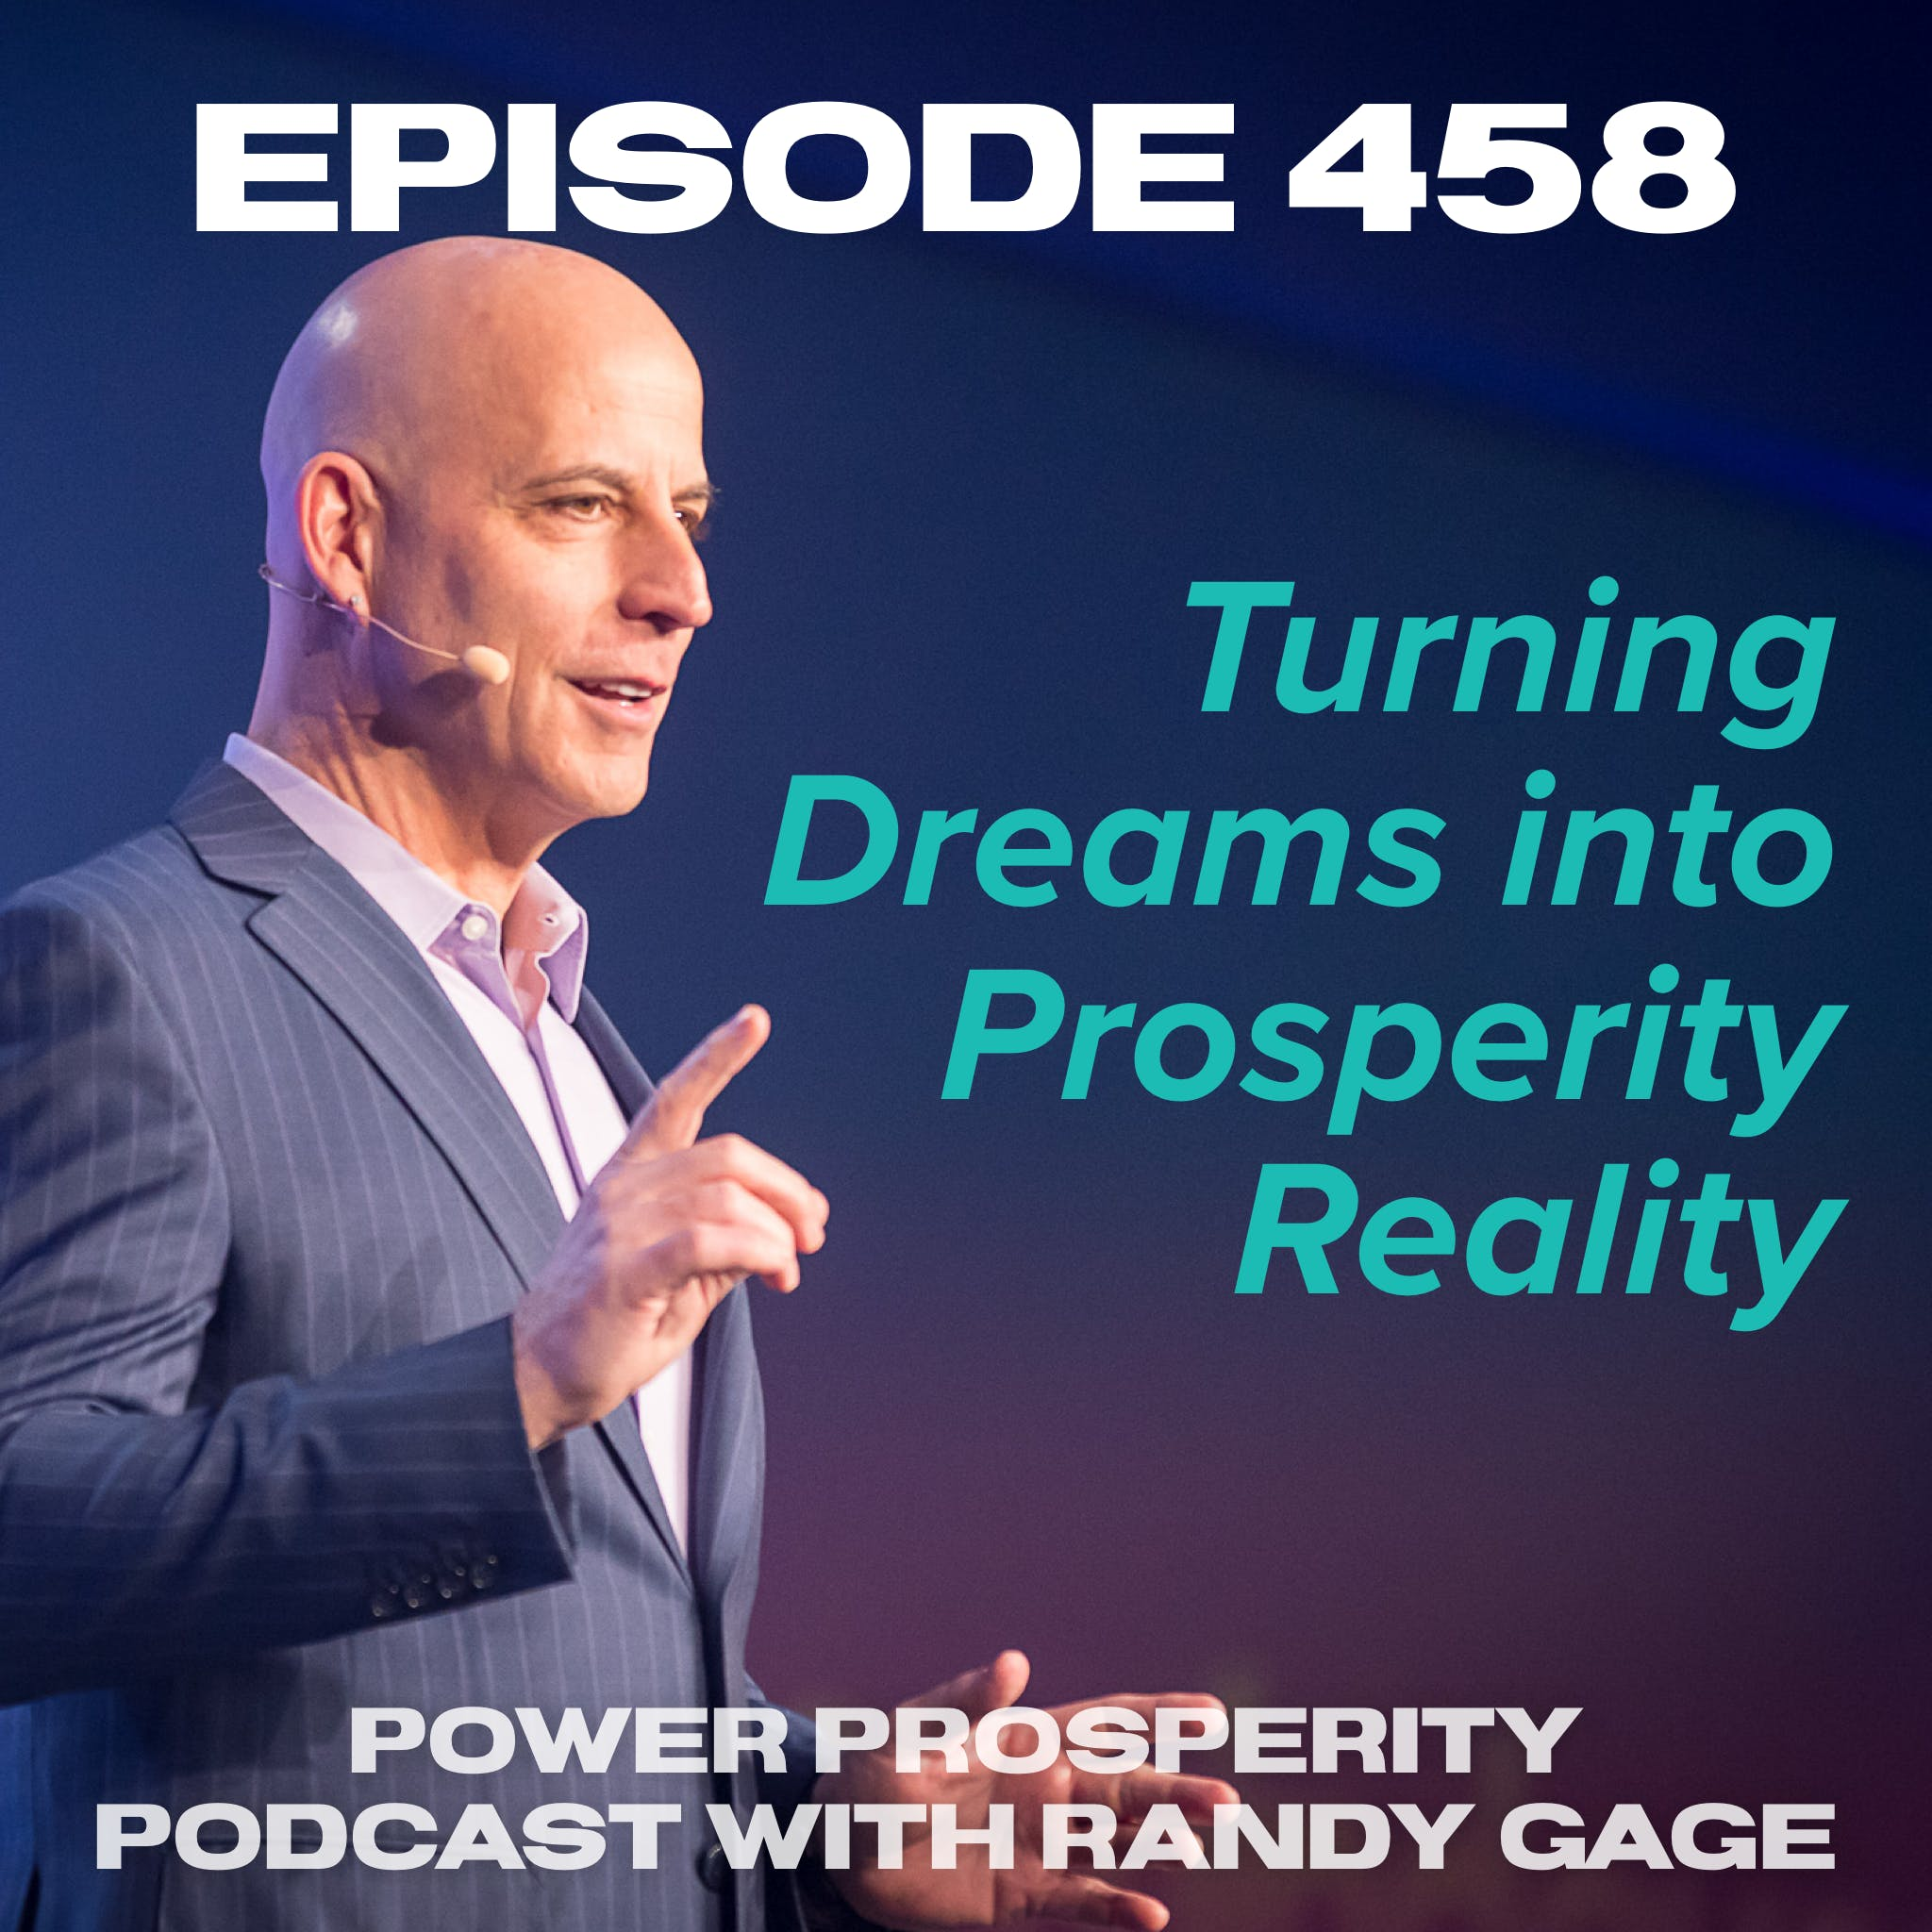 Episode 458: Turning Dreams into Prosperity Reality